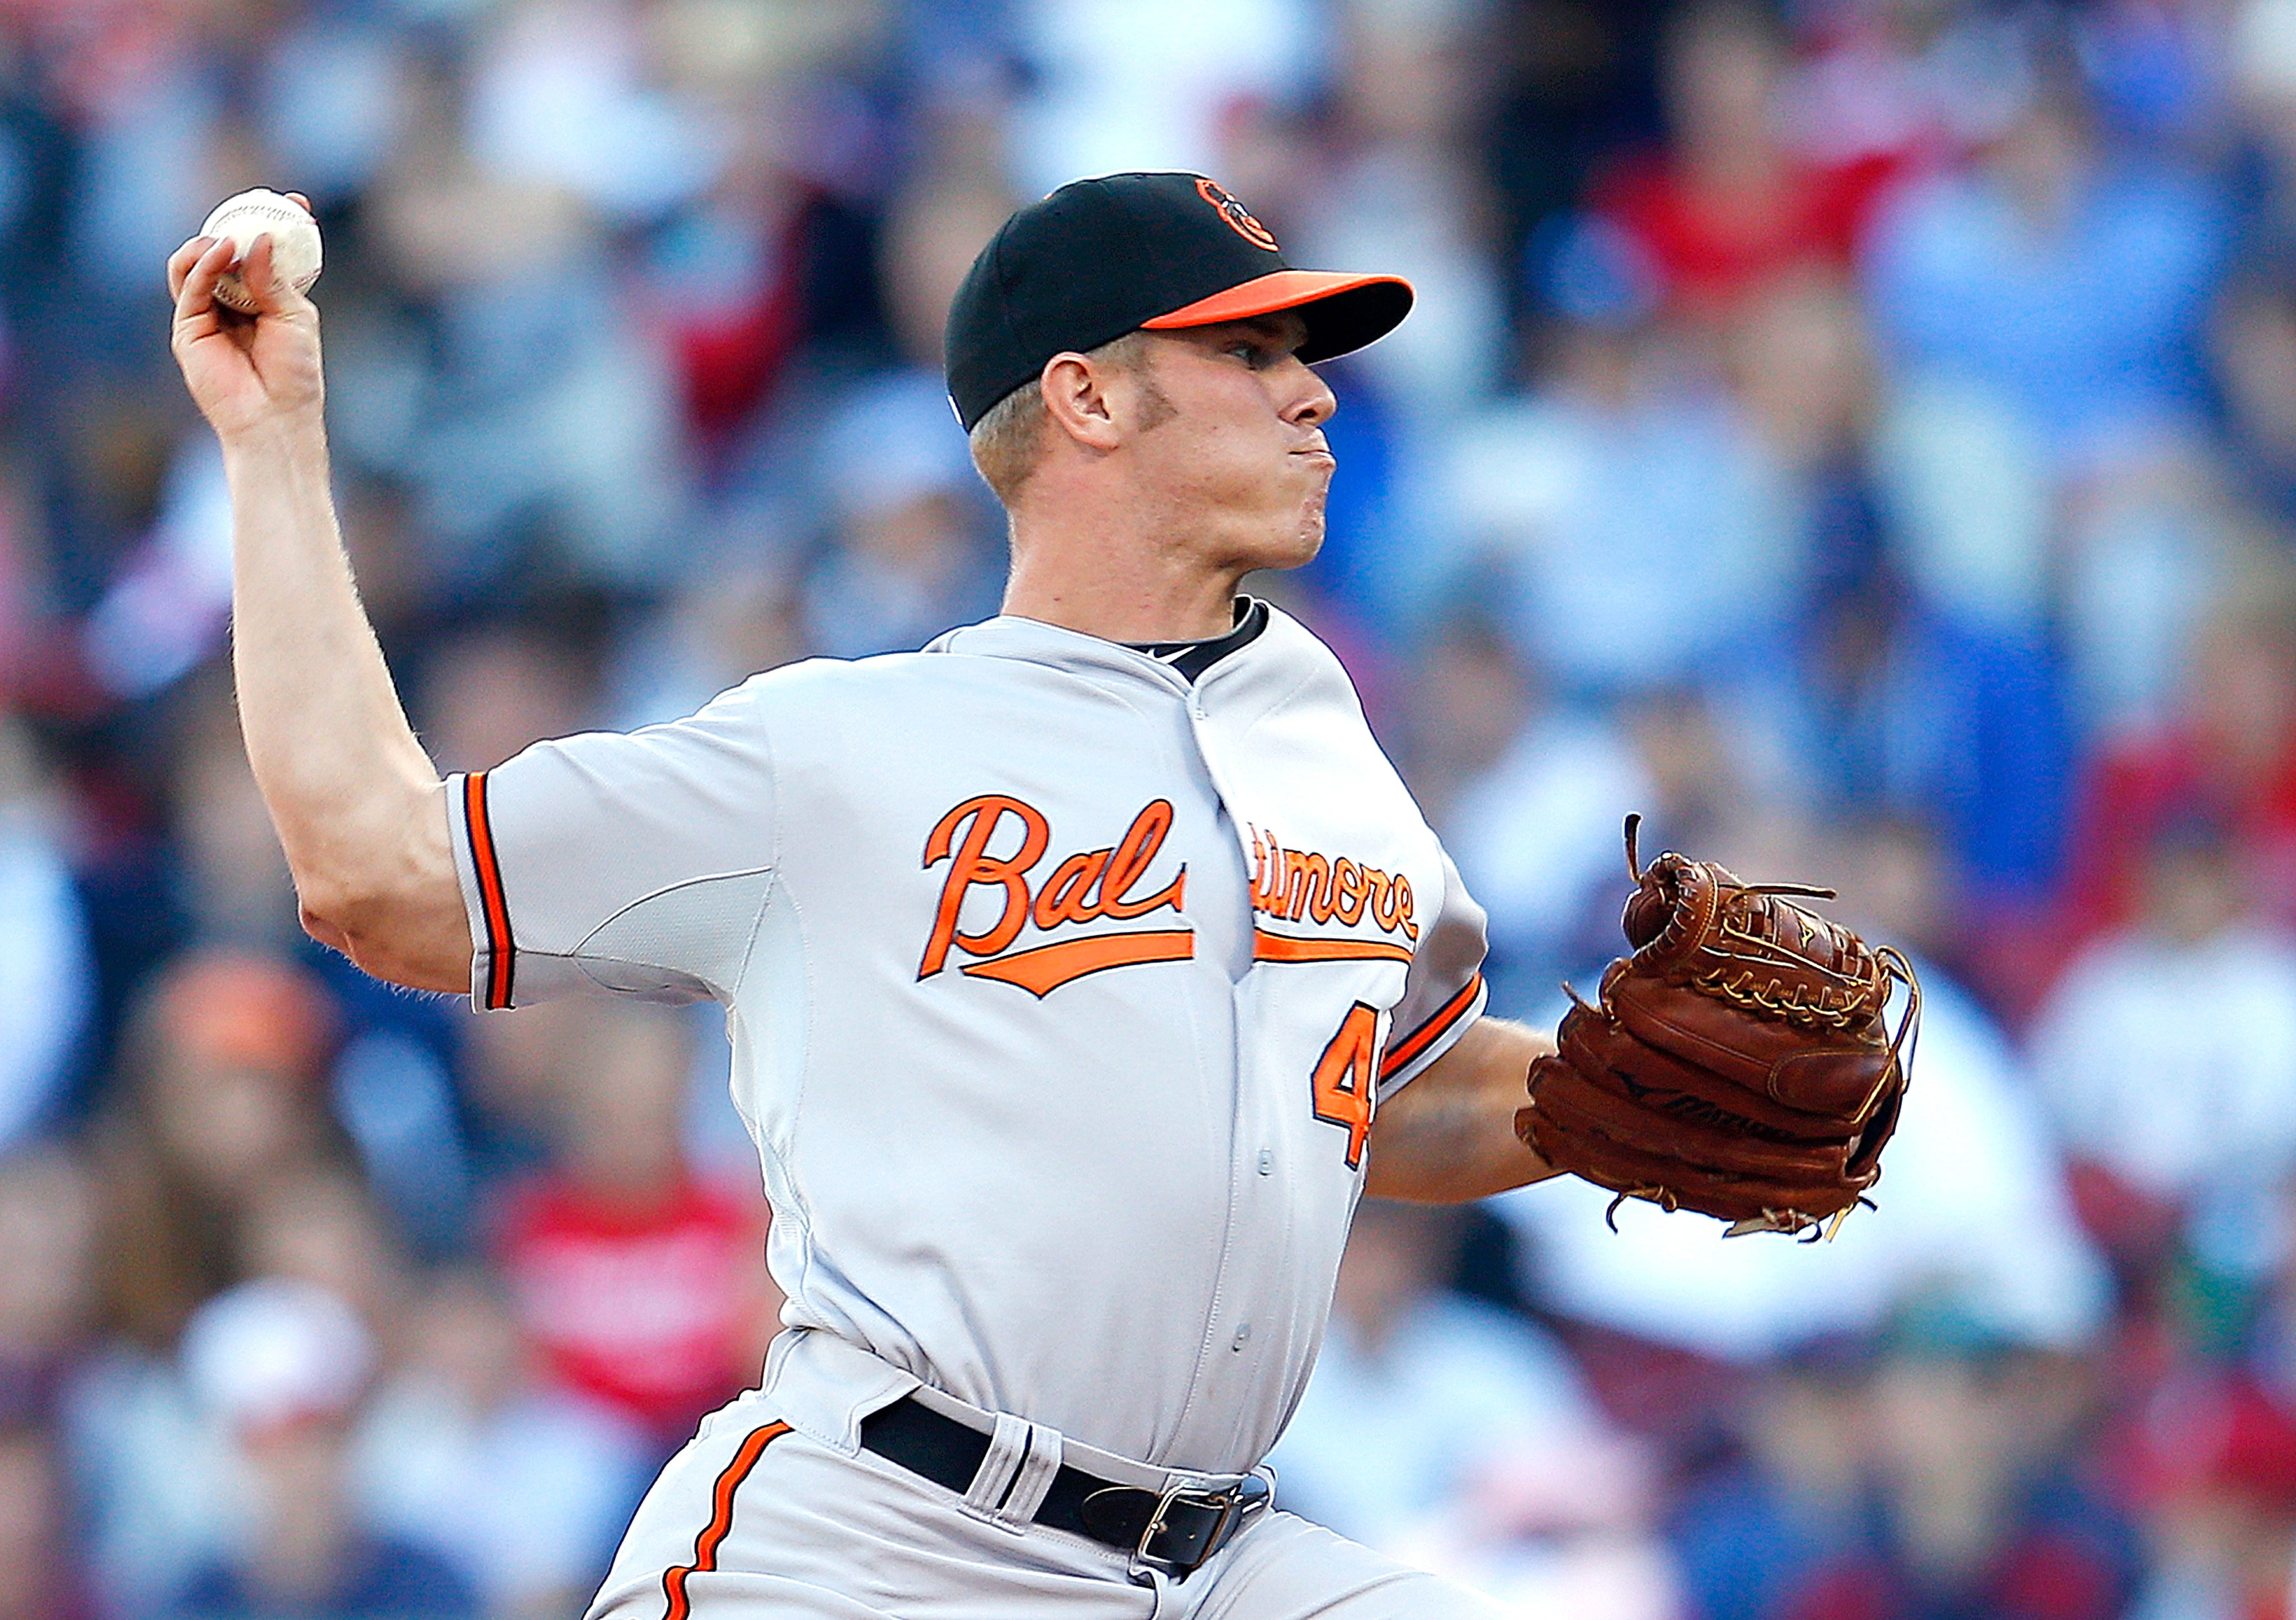 For no reason, here is a picture of Dylan Bundy throwing a pitch.  (Photo by Jim Rogash/Getty Images)